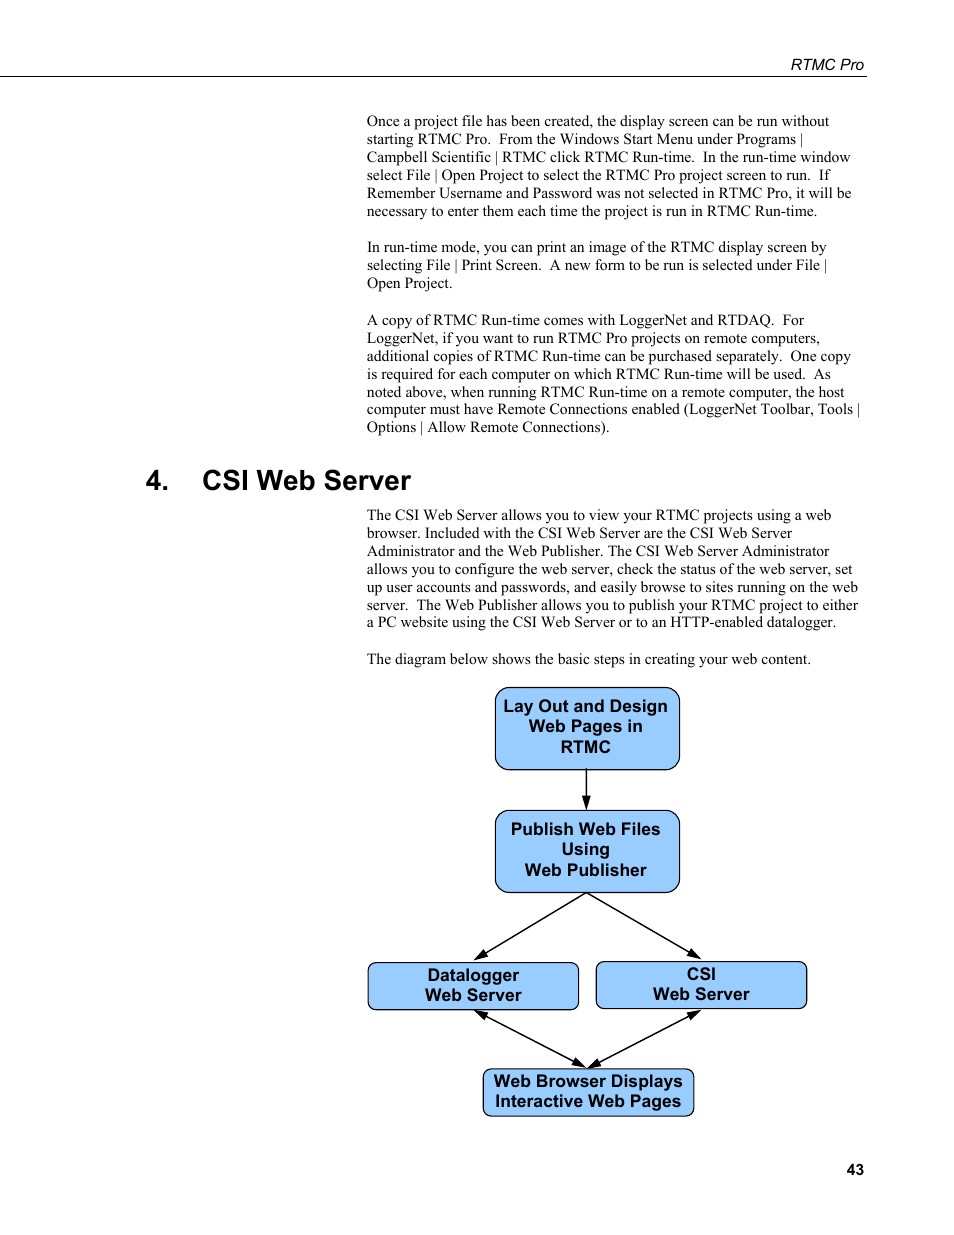 Csi web server | Campbell Scientific RTMC Pro Real-Time Monitor and